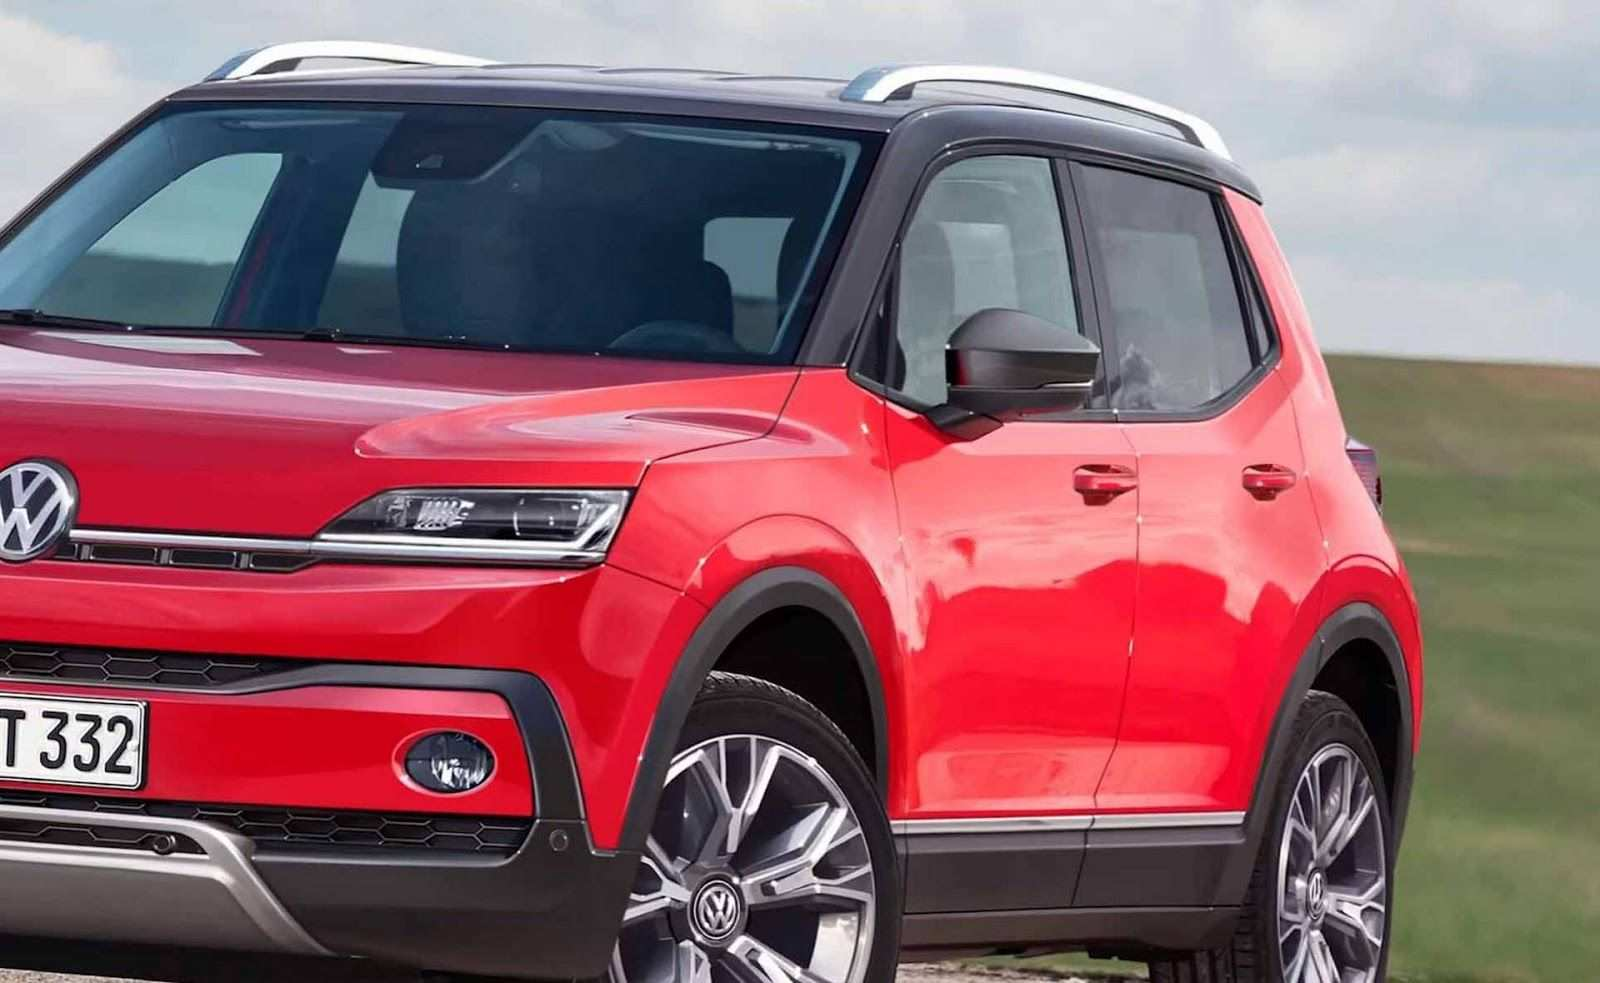 17 Great Volkswagen Lancamento 2019 Price Picture with Volkswagen Lancamento 2019 Price